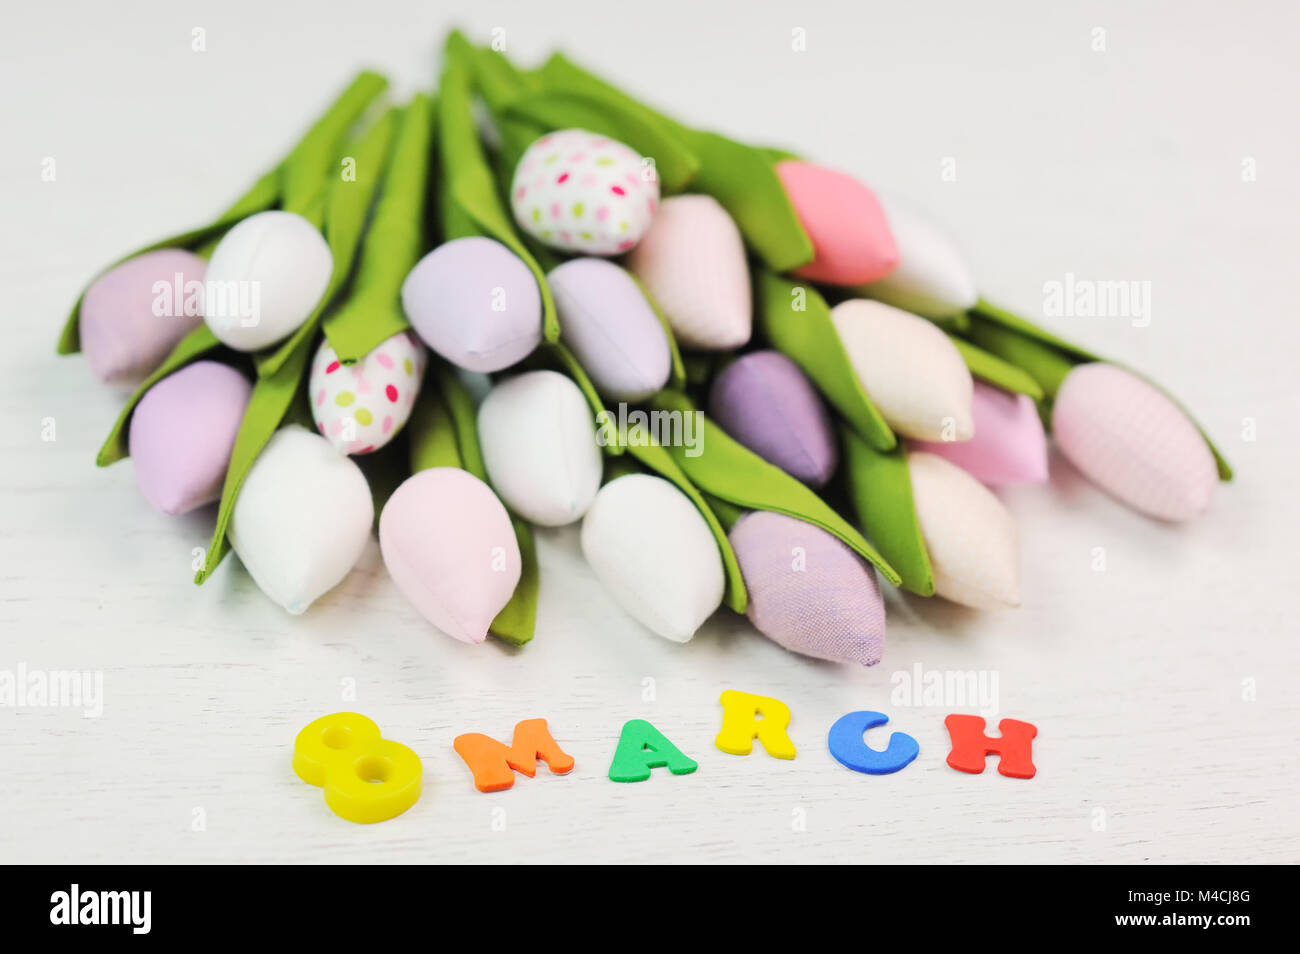 inscription from color letters - March 8 against a background of toy tulips flowers  - Stock Image